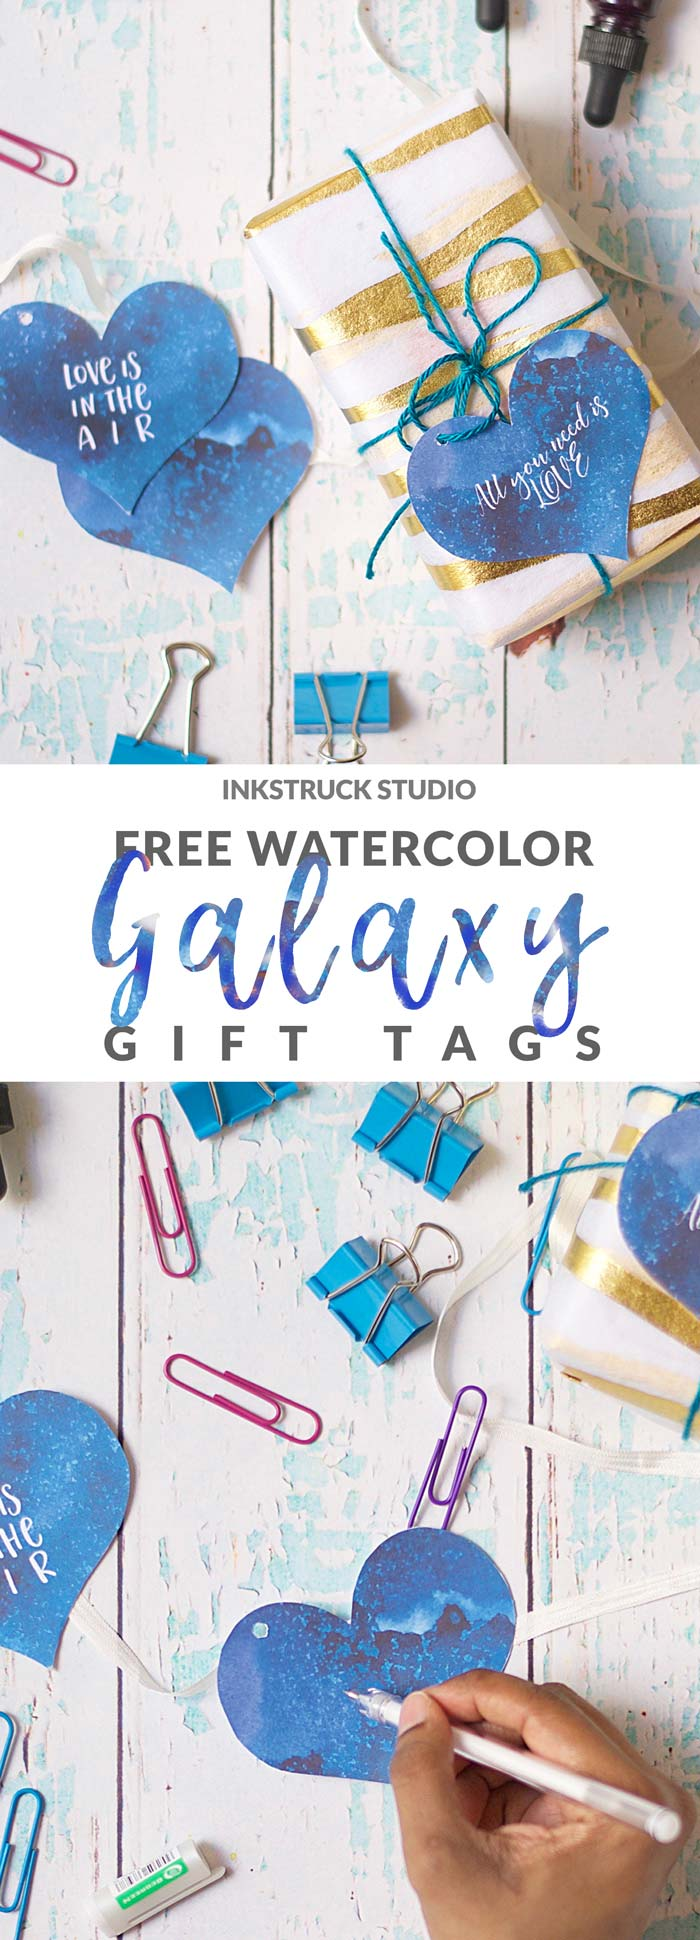 The universe is stunningly beautiful and so are these! Download free watercolor galaxy gift tags.Click to see how. - Inkstruck Studio